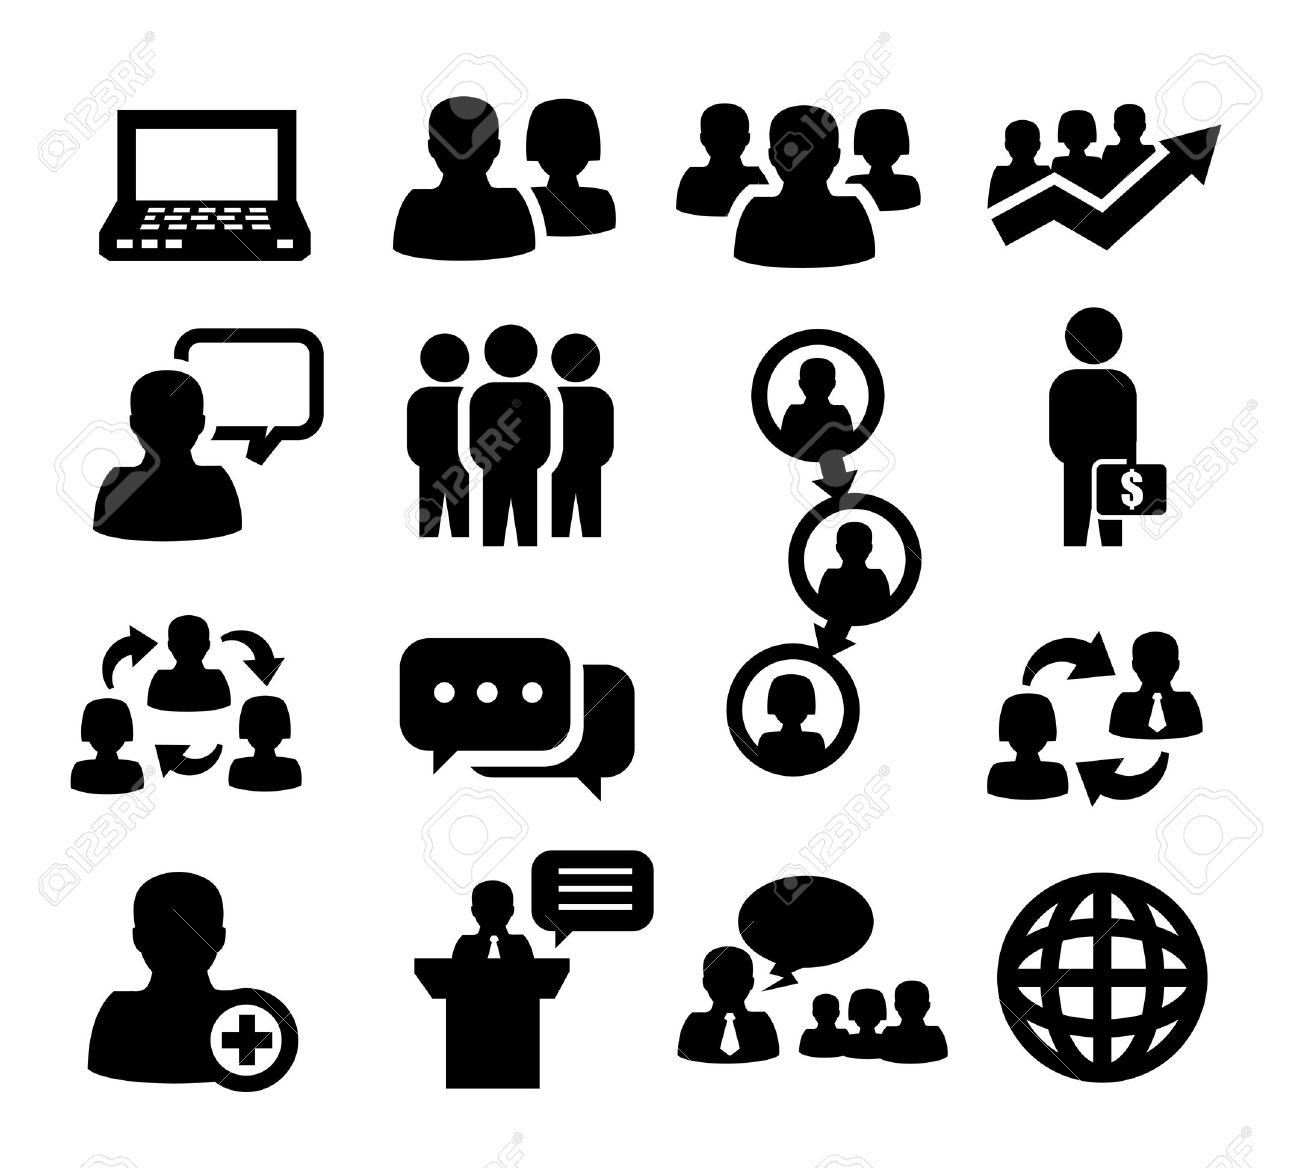 General People Group Icon Clipart